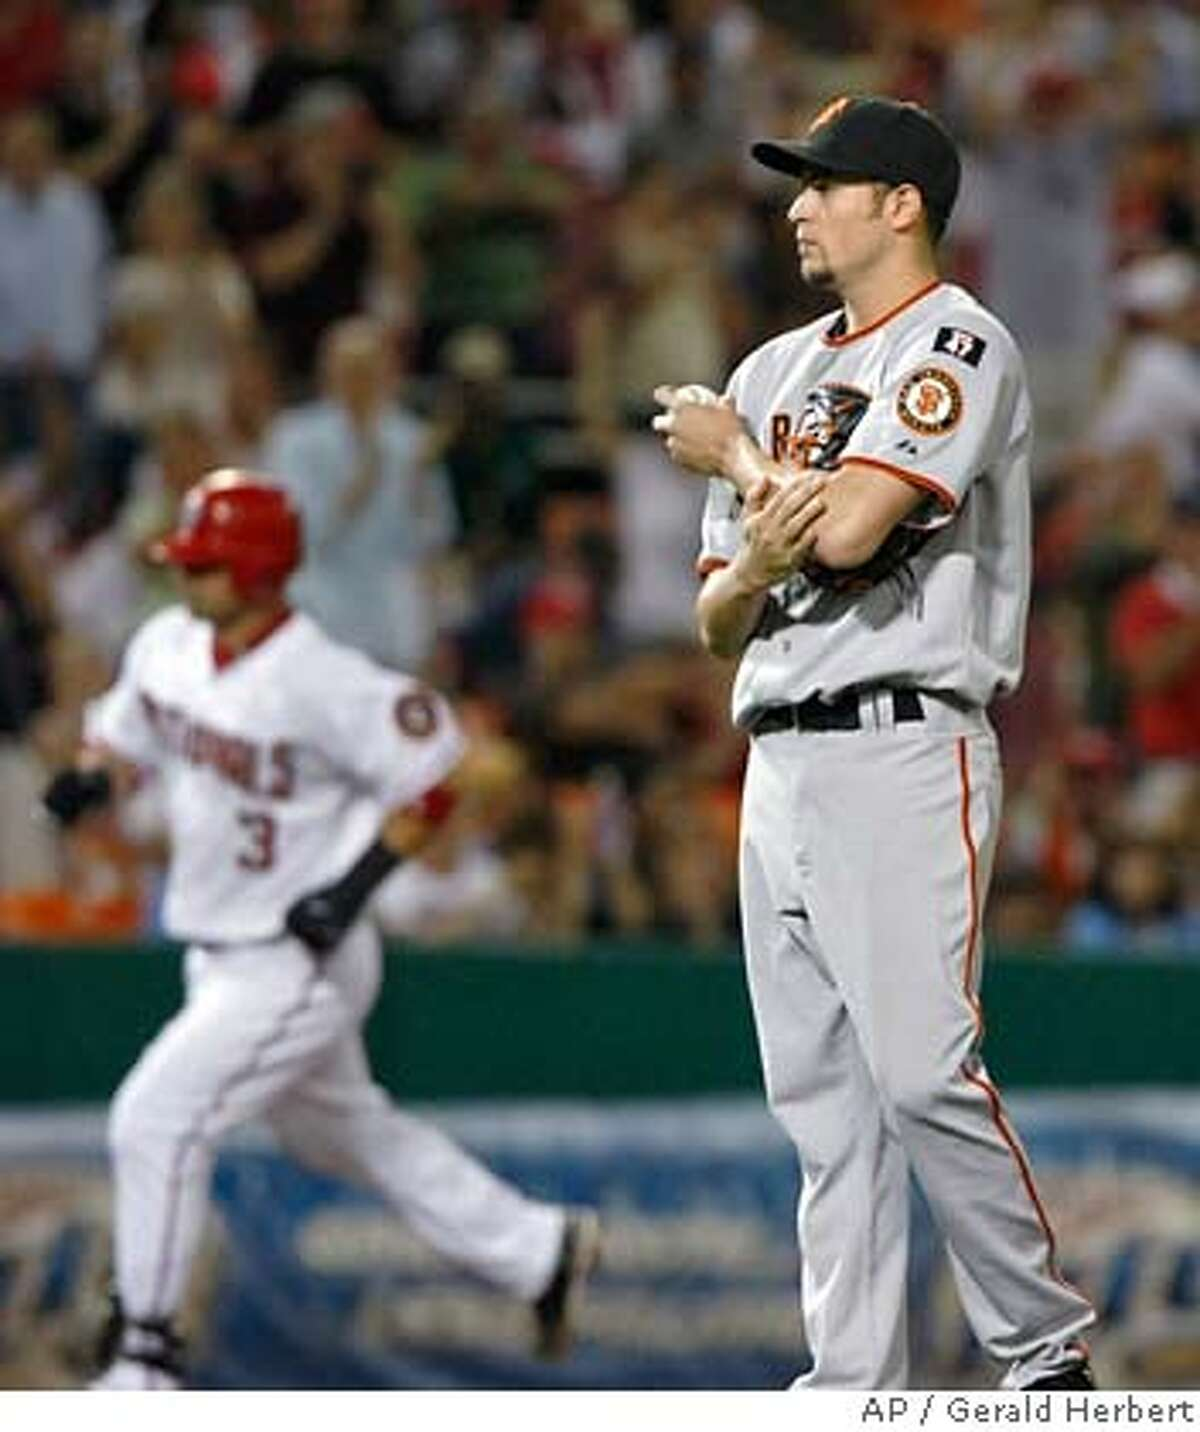 San Francisco Giants pitcher Jonathan Sanchez watches as Washington Nationals' Jesus Flores rounds third base after giving up a solo homer in the fifth inning of a baseball game at RFK Stadium in Washington, Saturday, Sept. 1, 2007. (AP Photo/Gerald Herbert)